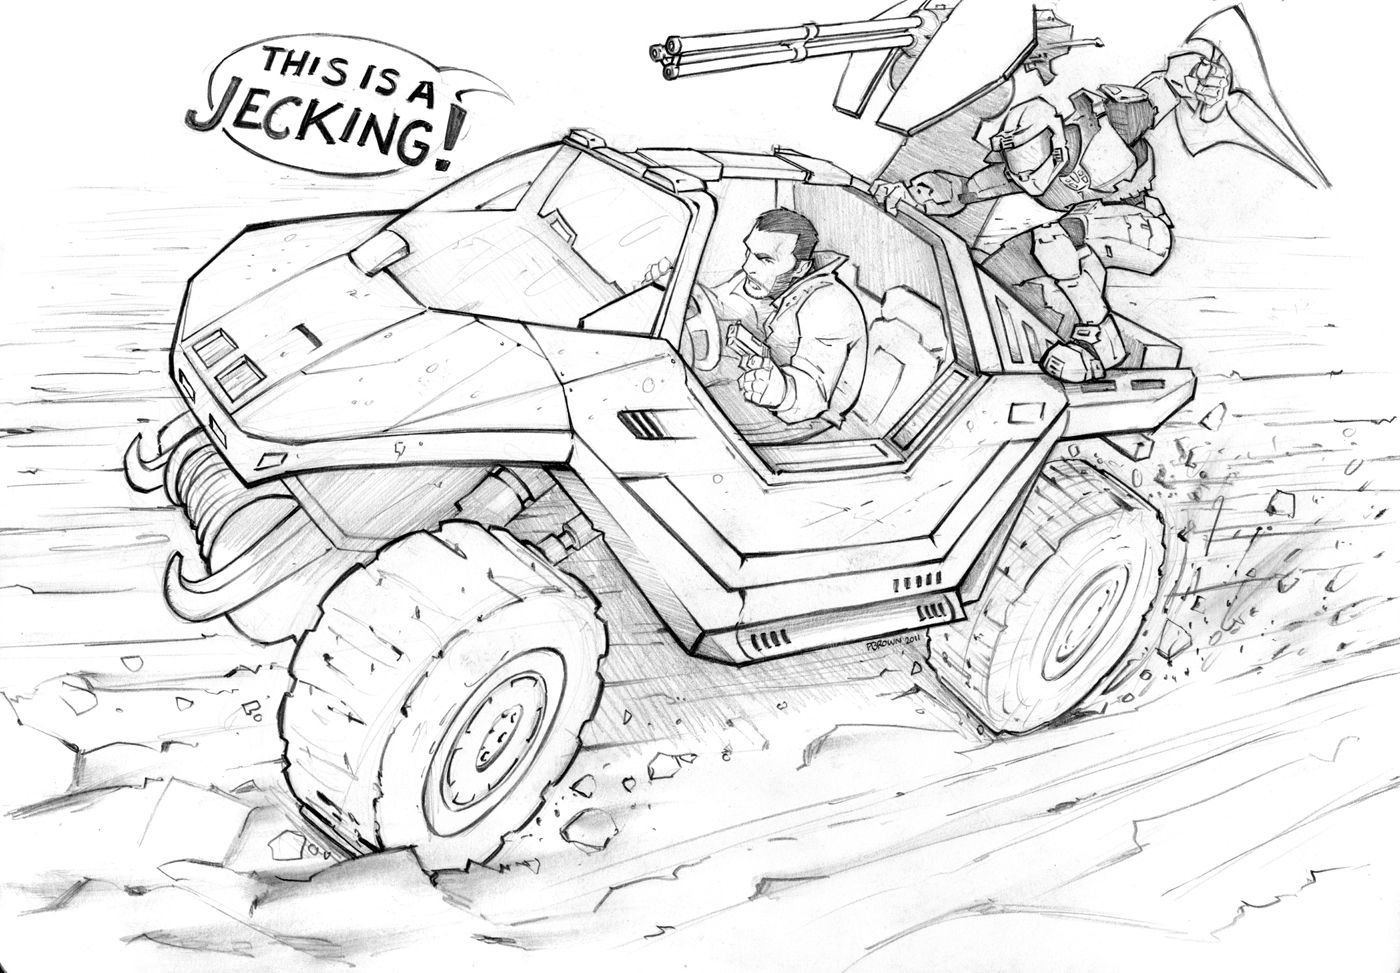 Grand Theft Auto Halo By Patrickbrown On Deviantart Grand Theft Auto Halo Drawings Character Design